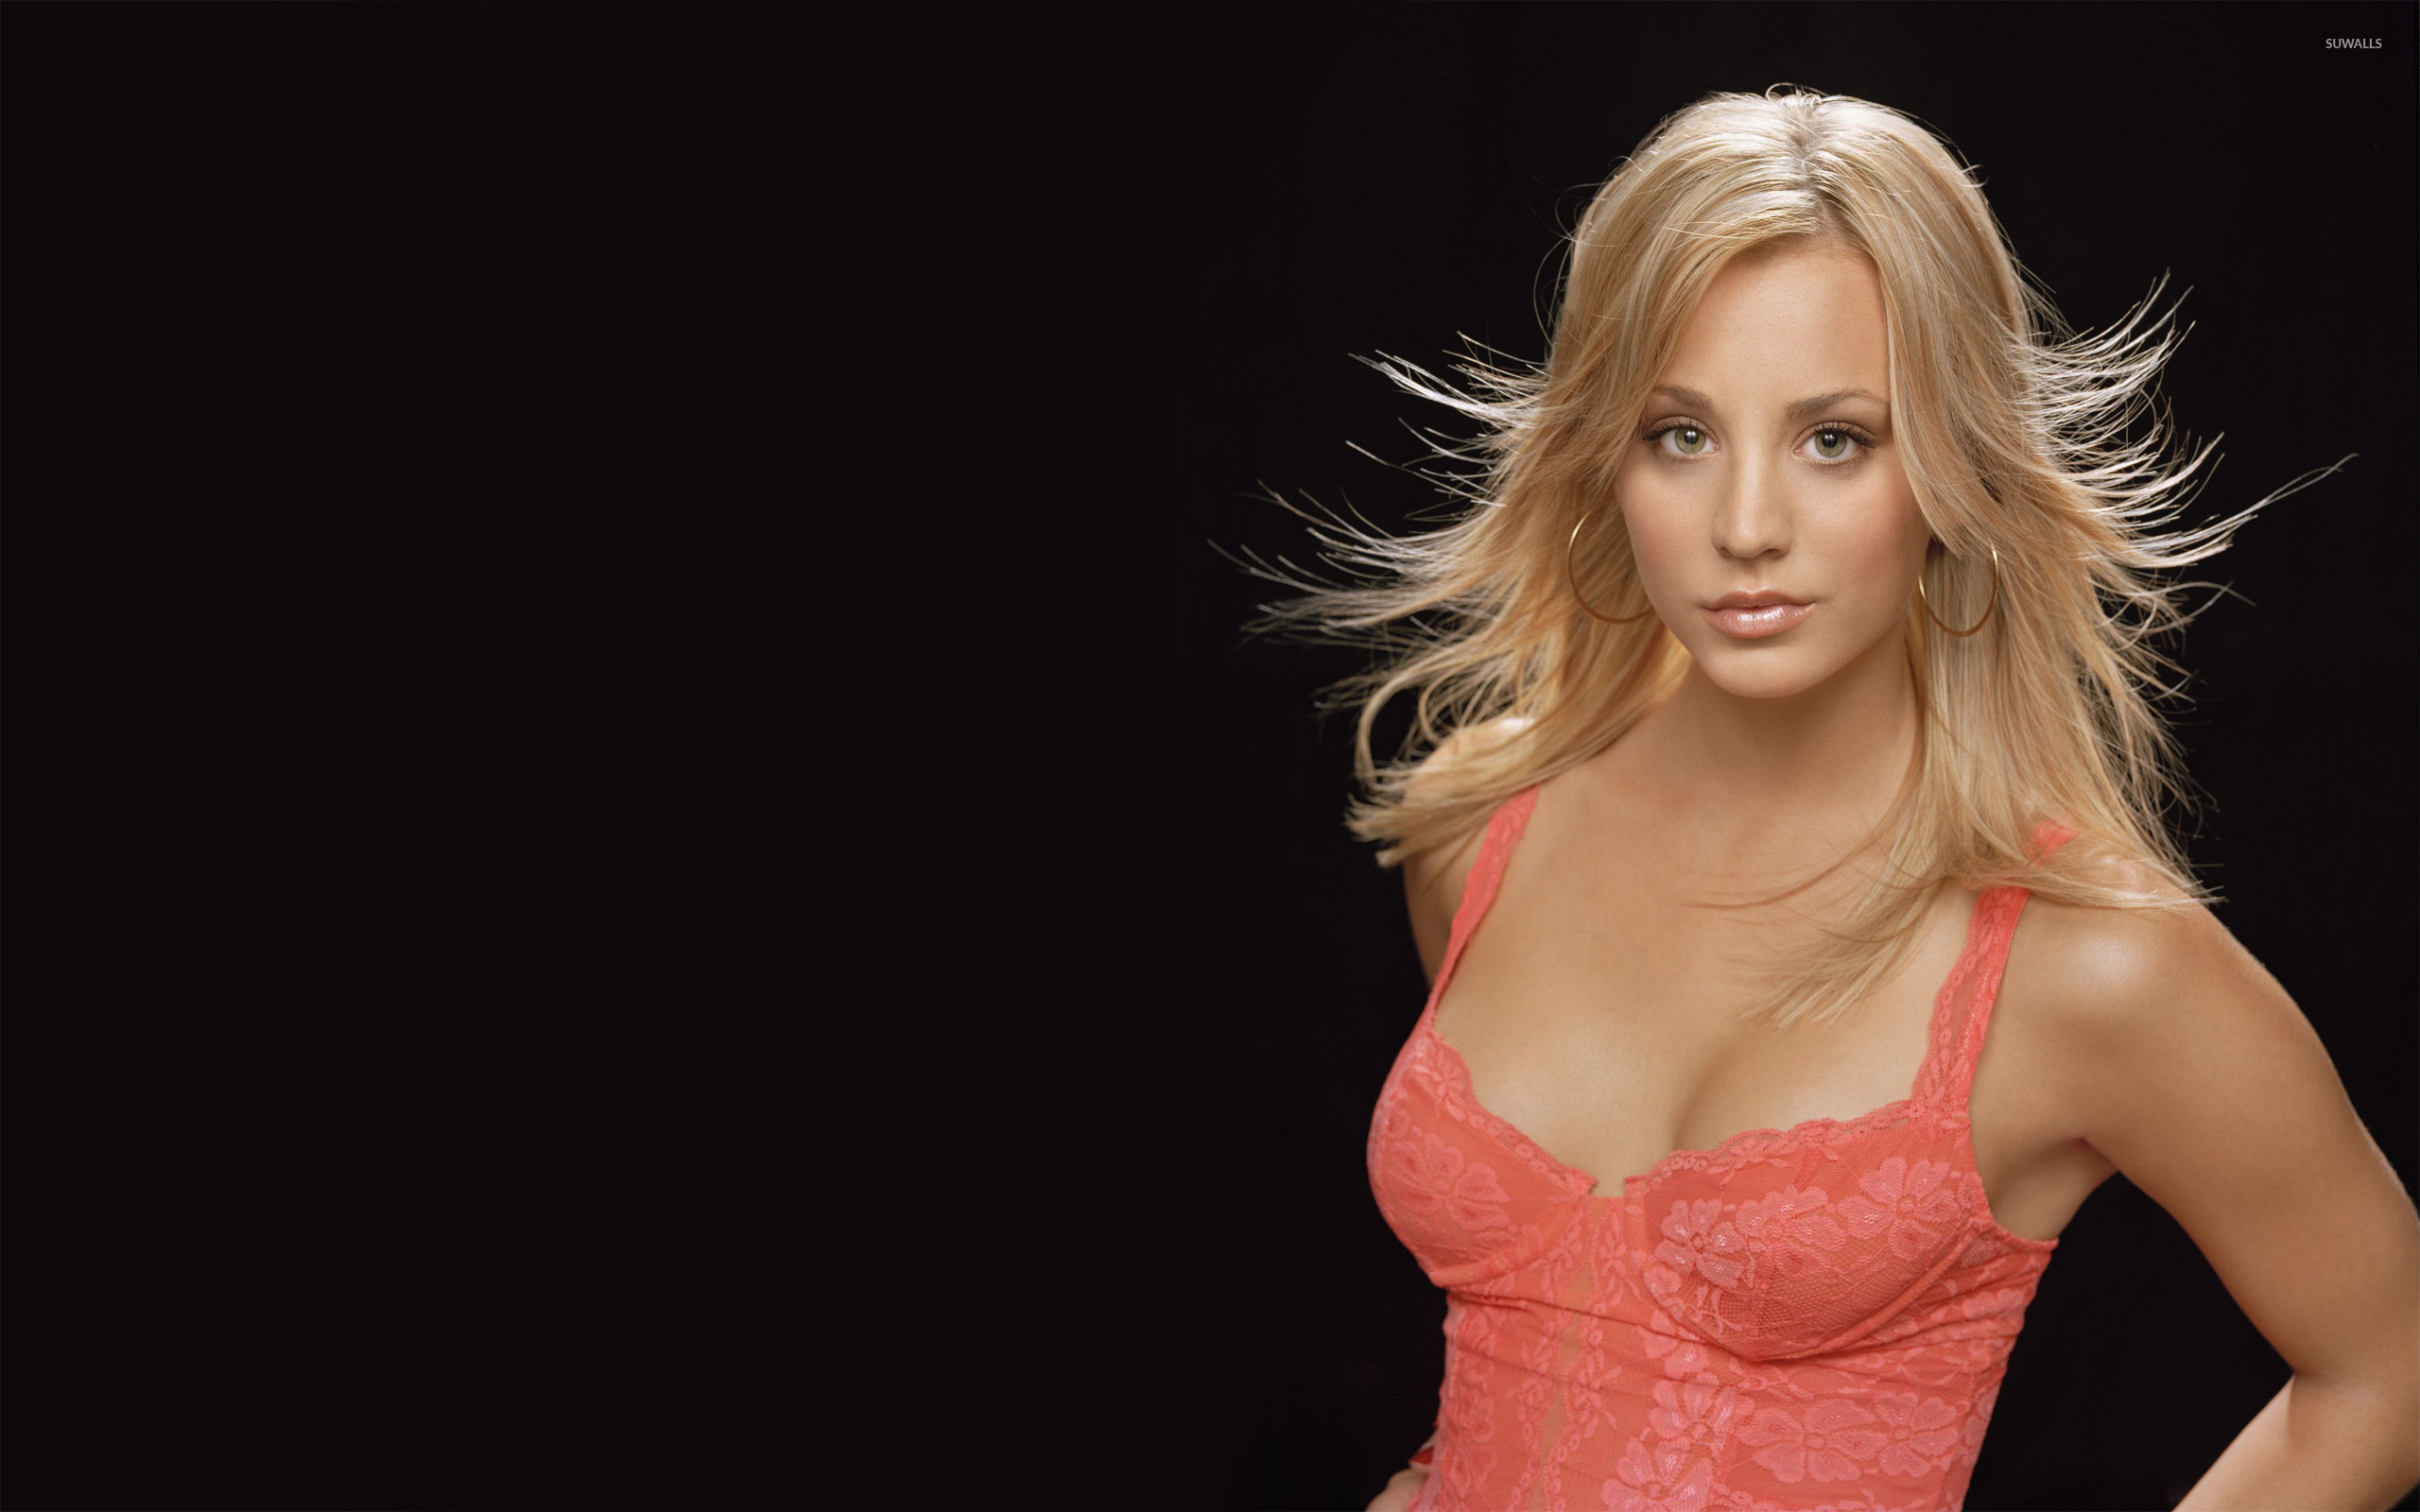 kaley cuoco [3] wallpaper - celebrity wallpapers - #7391